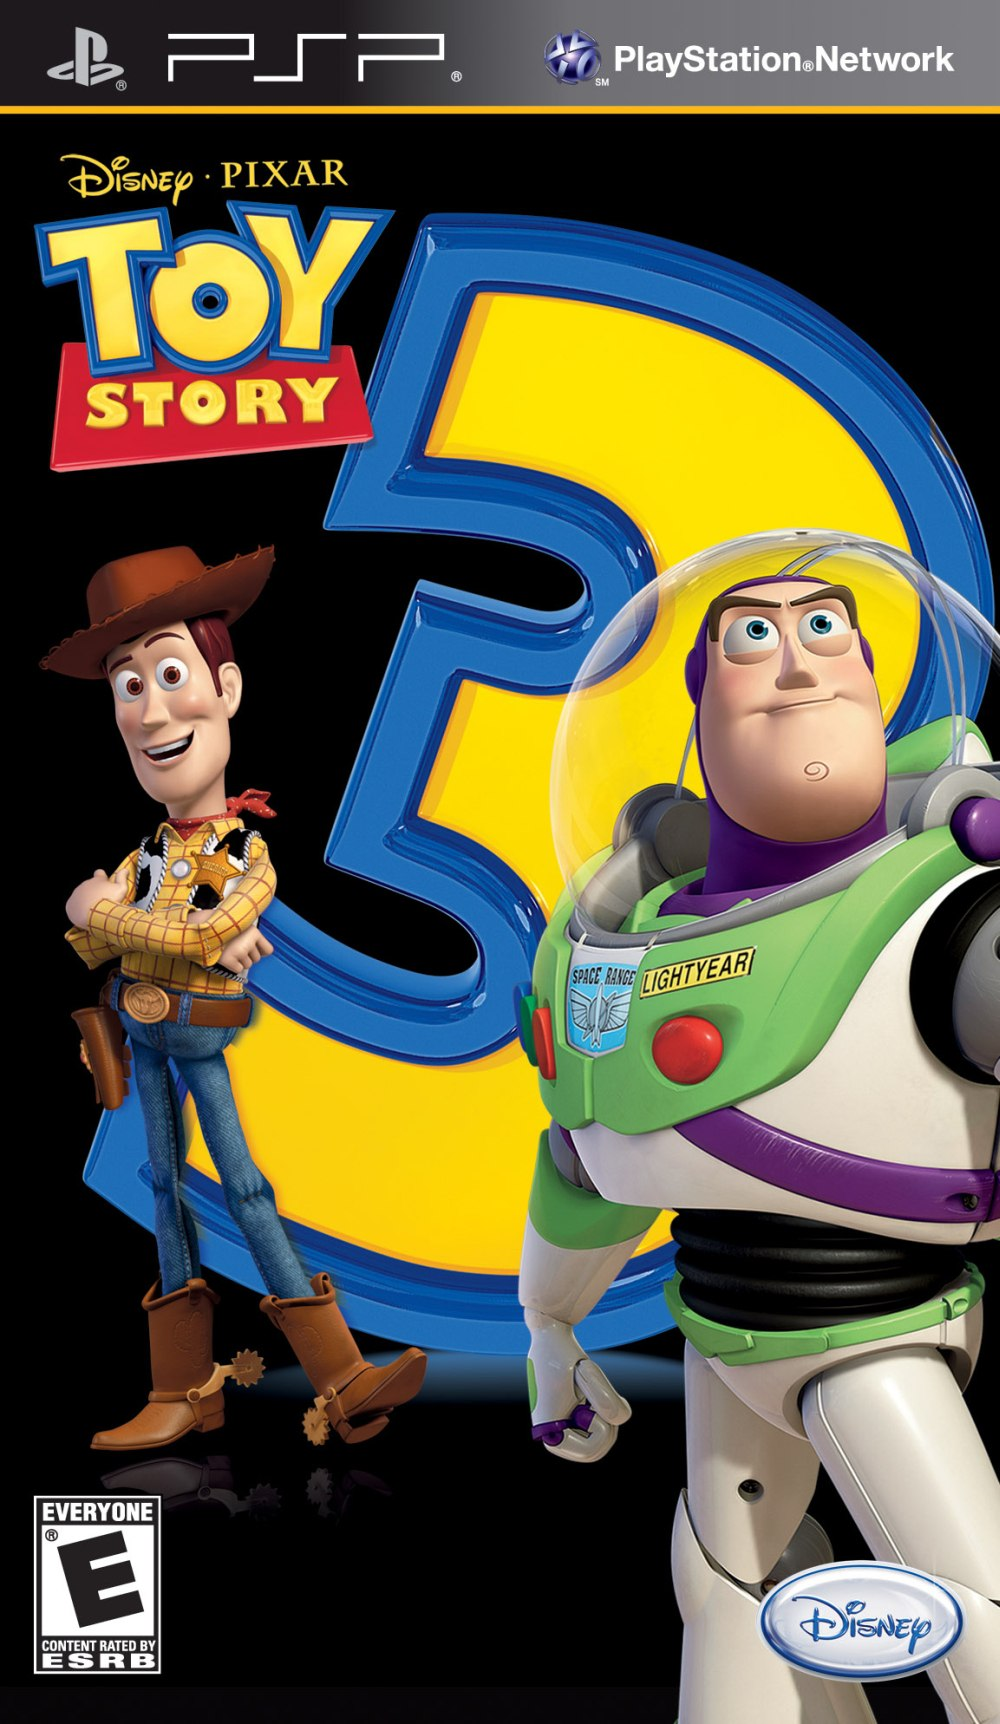 [PSP]Toy Story 3: The Video Game [FULL][ISO][RUS]